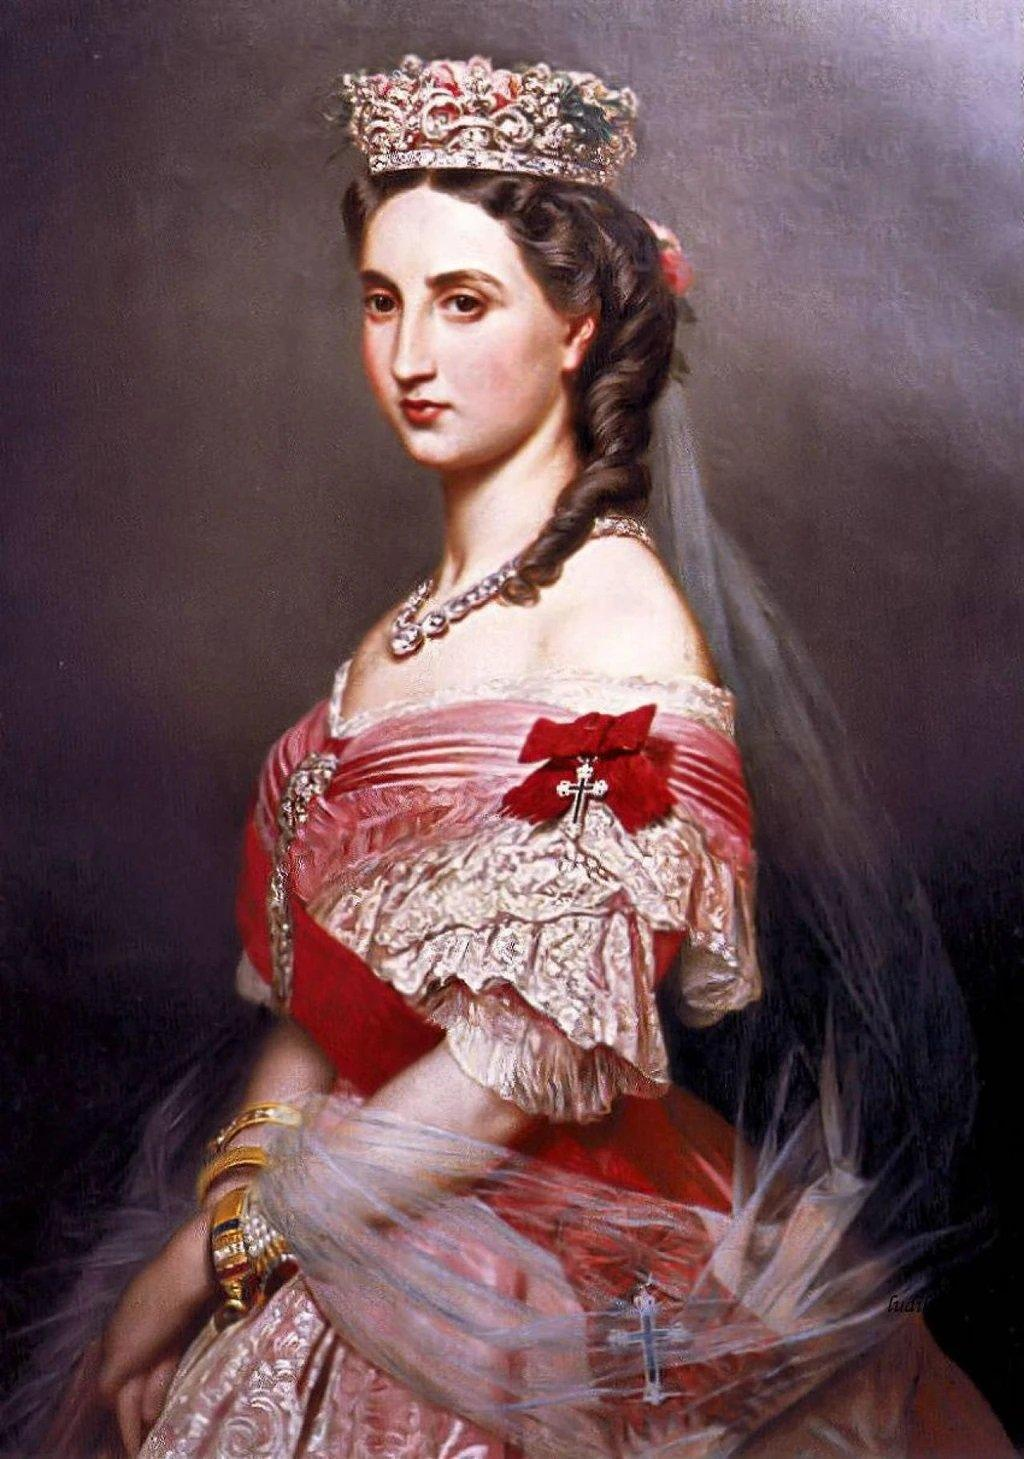 Portrait of Charlotte of Belgium (1864). Artist: Franz Xaver Winterhalter Home & Garden > Decor > Artwork > Posters, Prints, & Visual Artwork ArtToyourlife